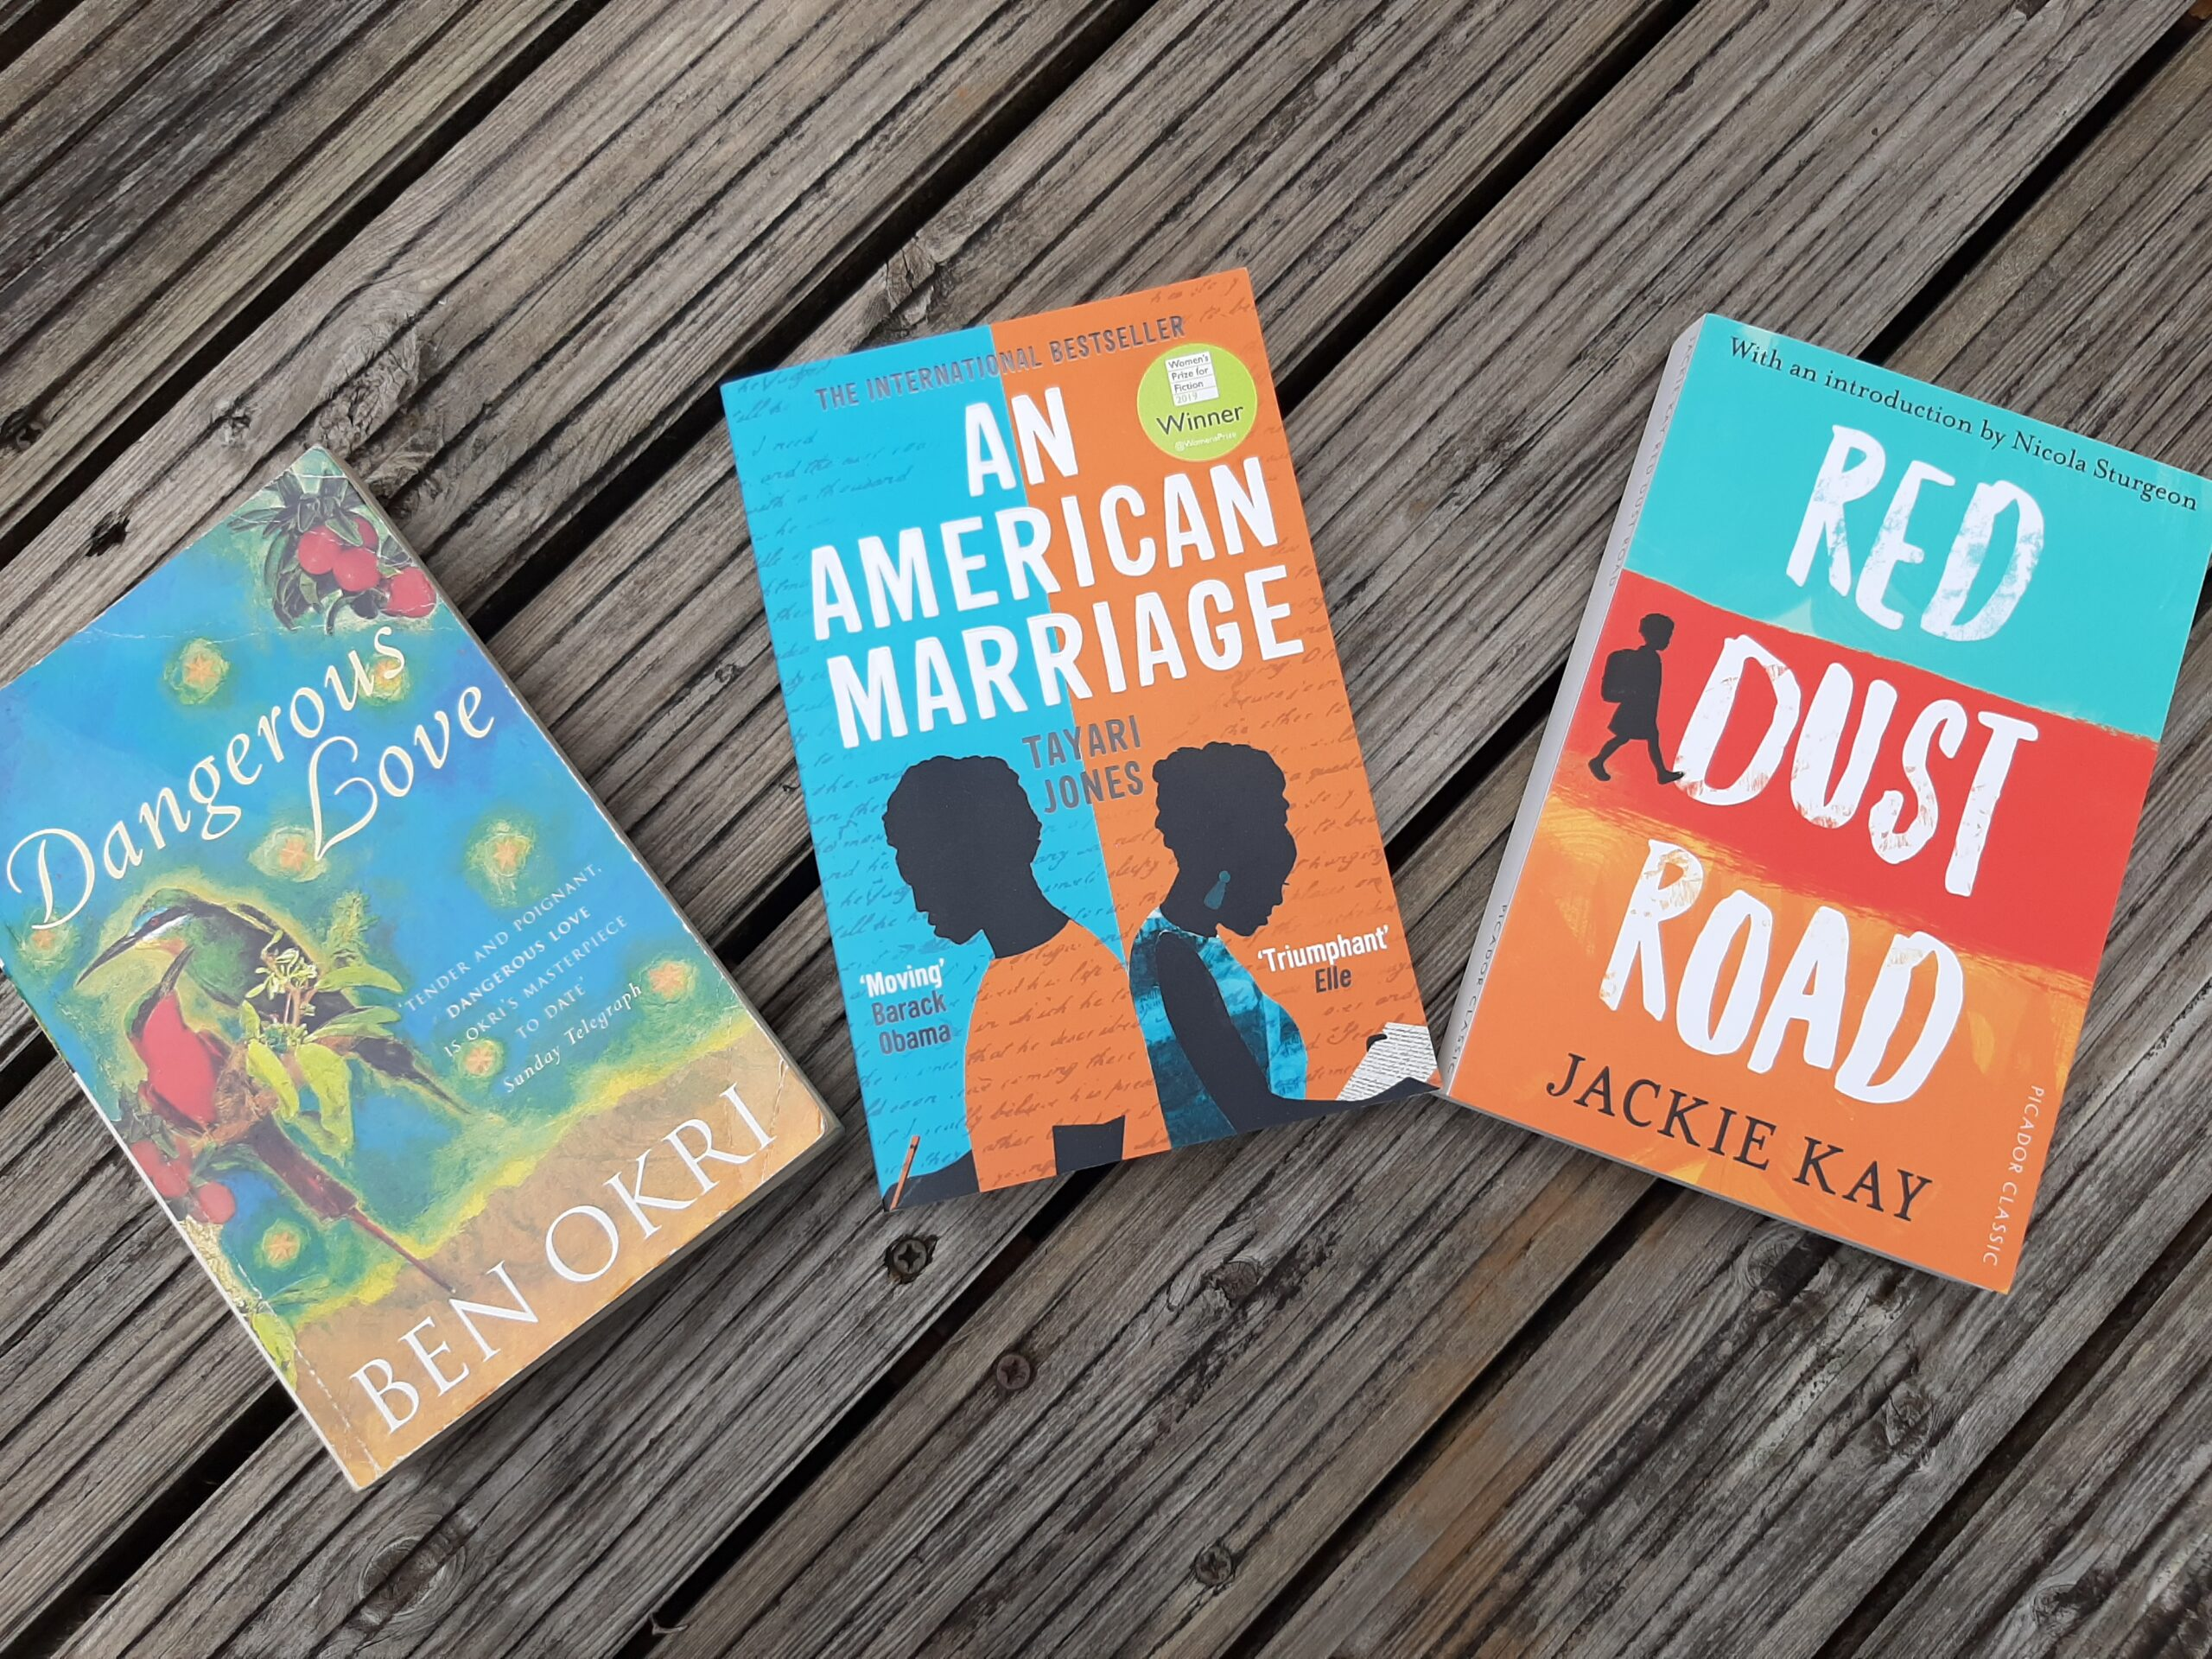 3 novels, Dangerous Love, An American Marriage and Red Dust Road